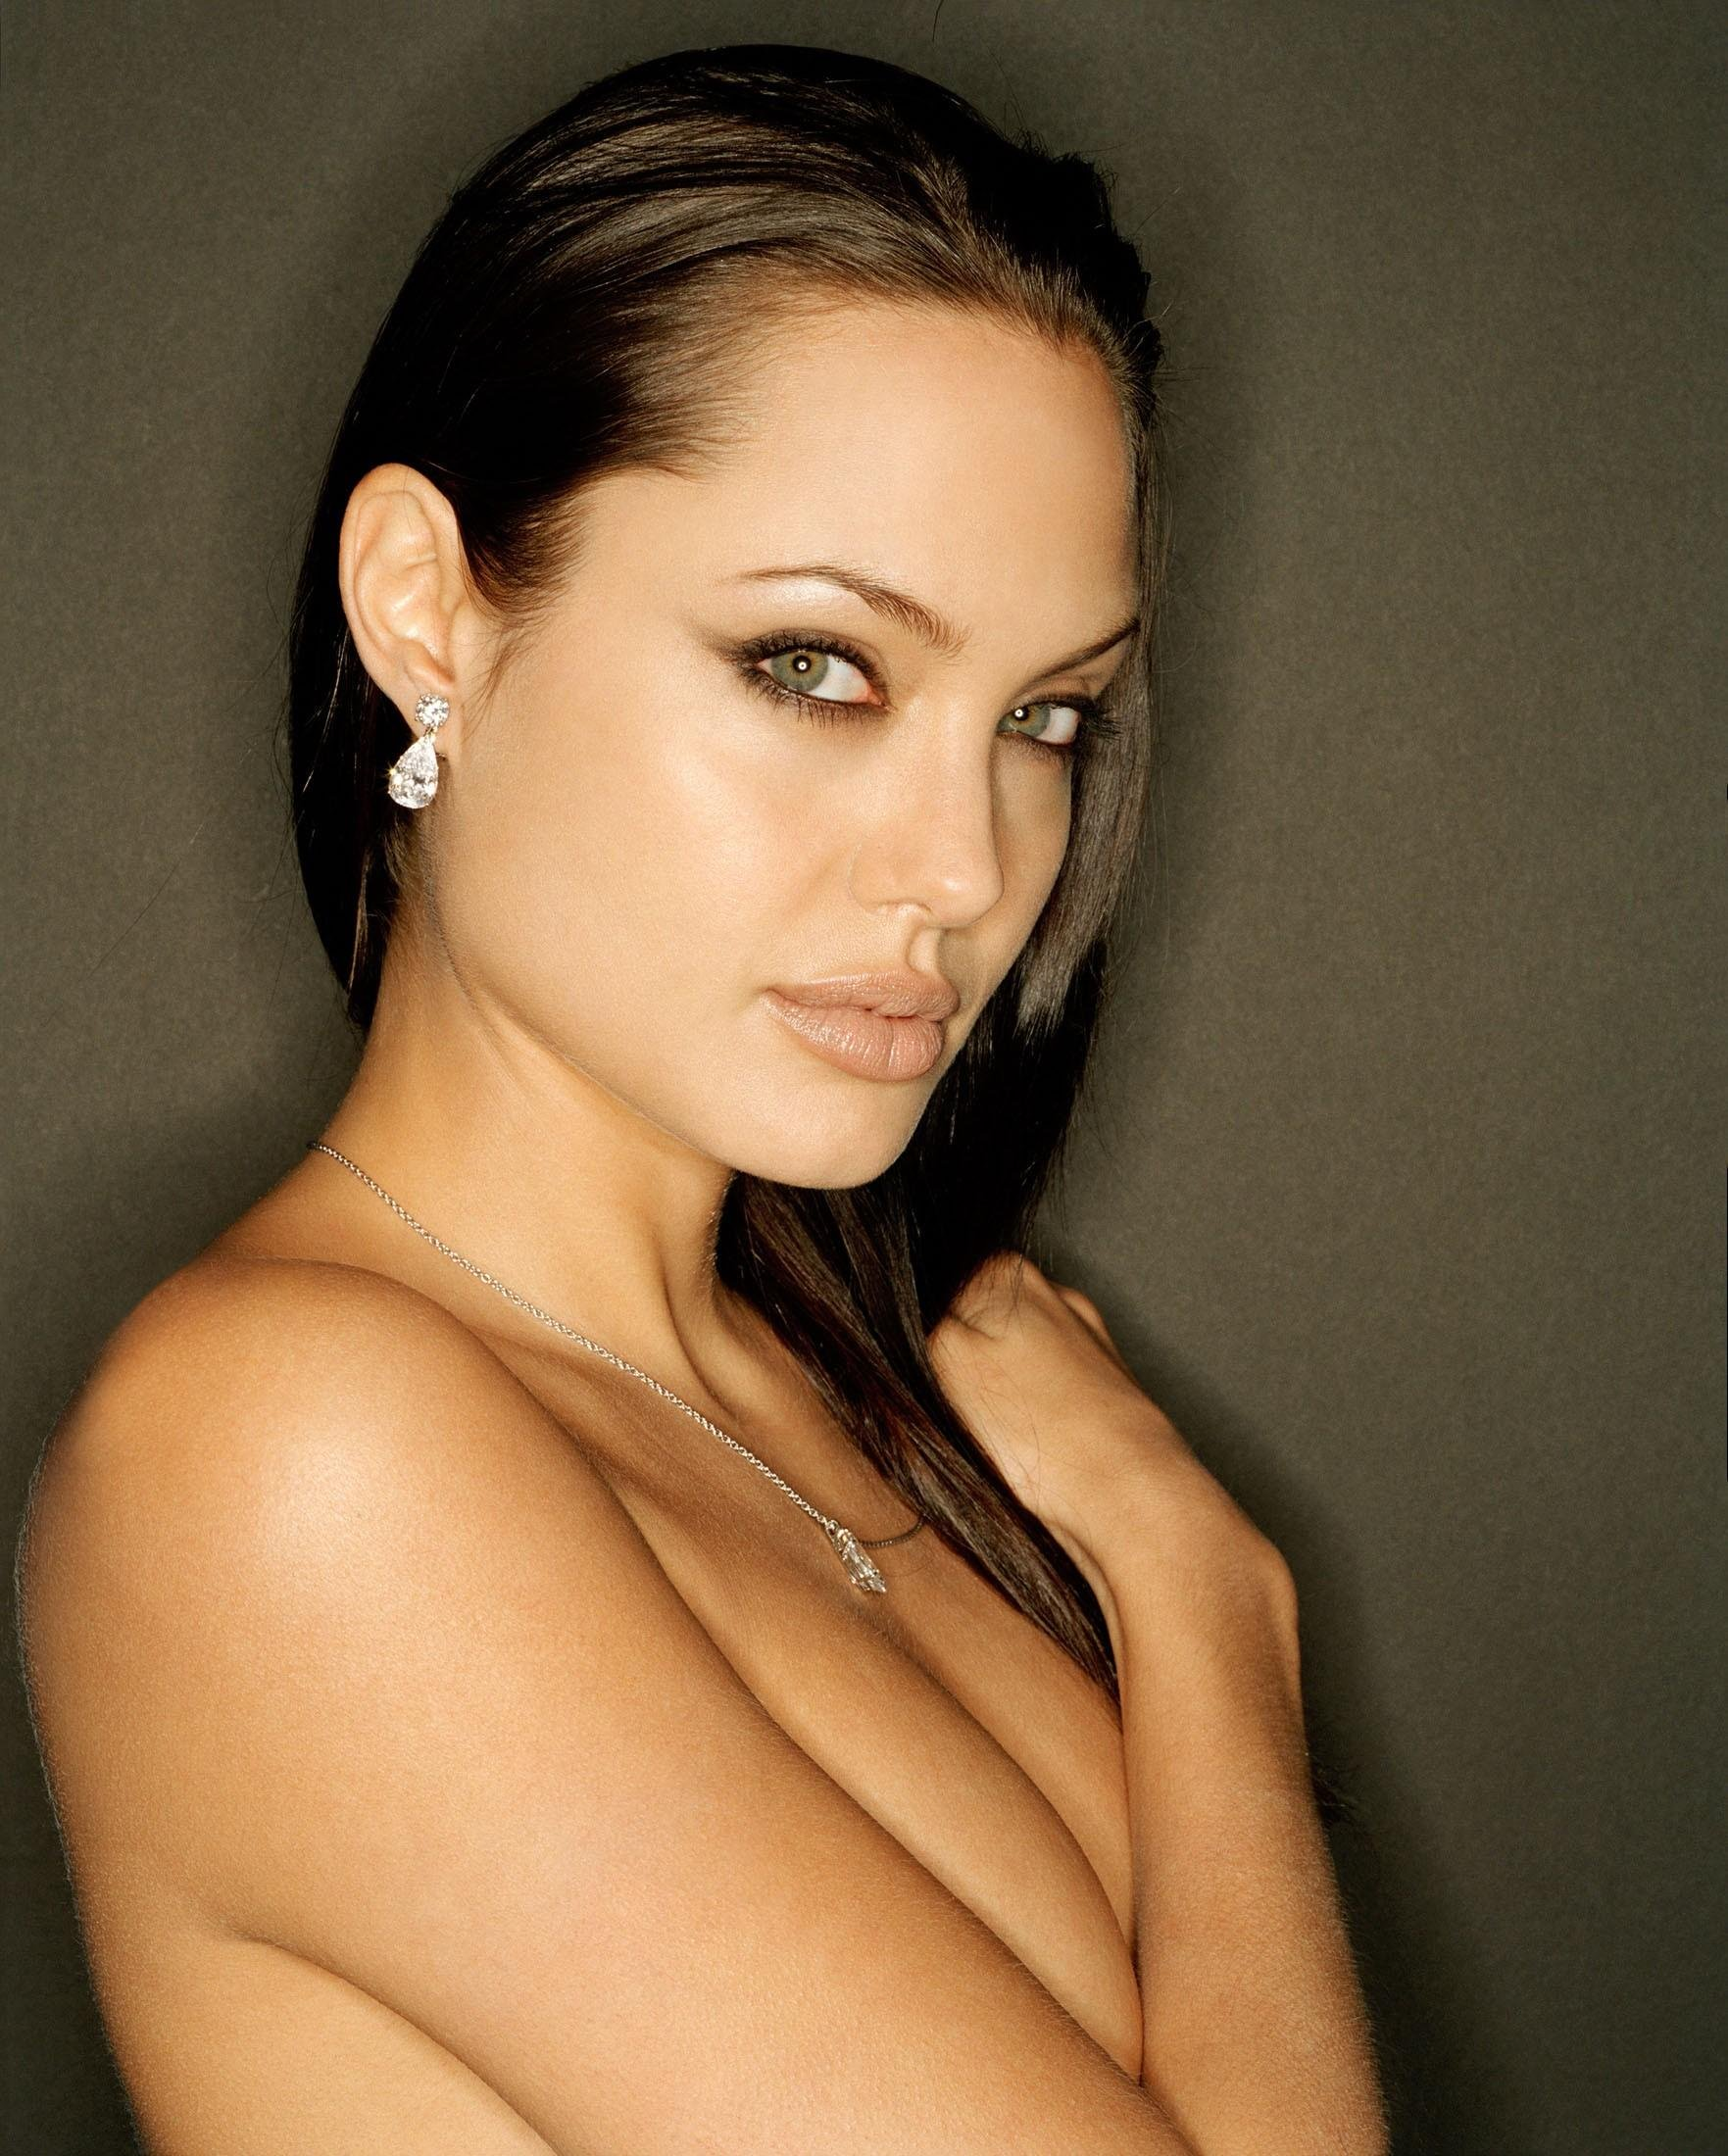 Angelina Jolie Nude Preview